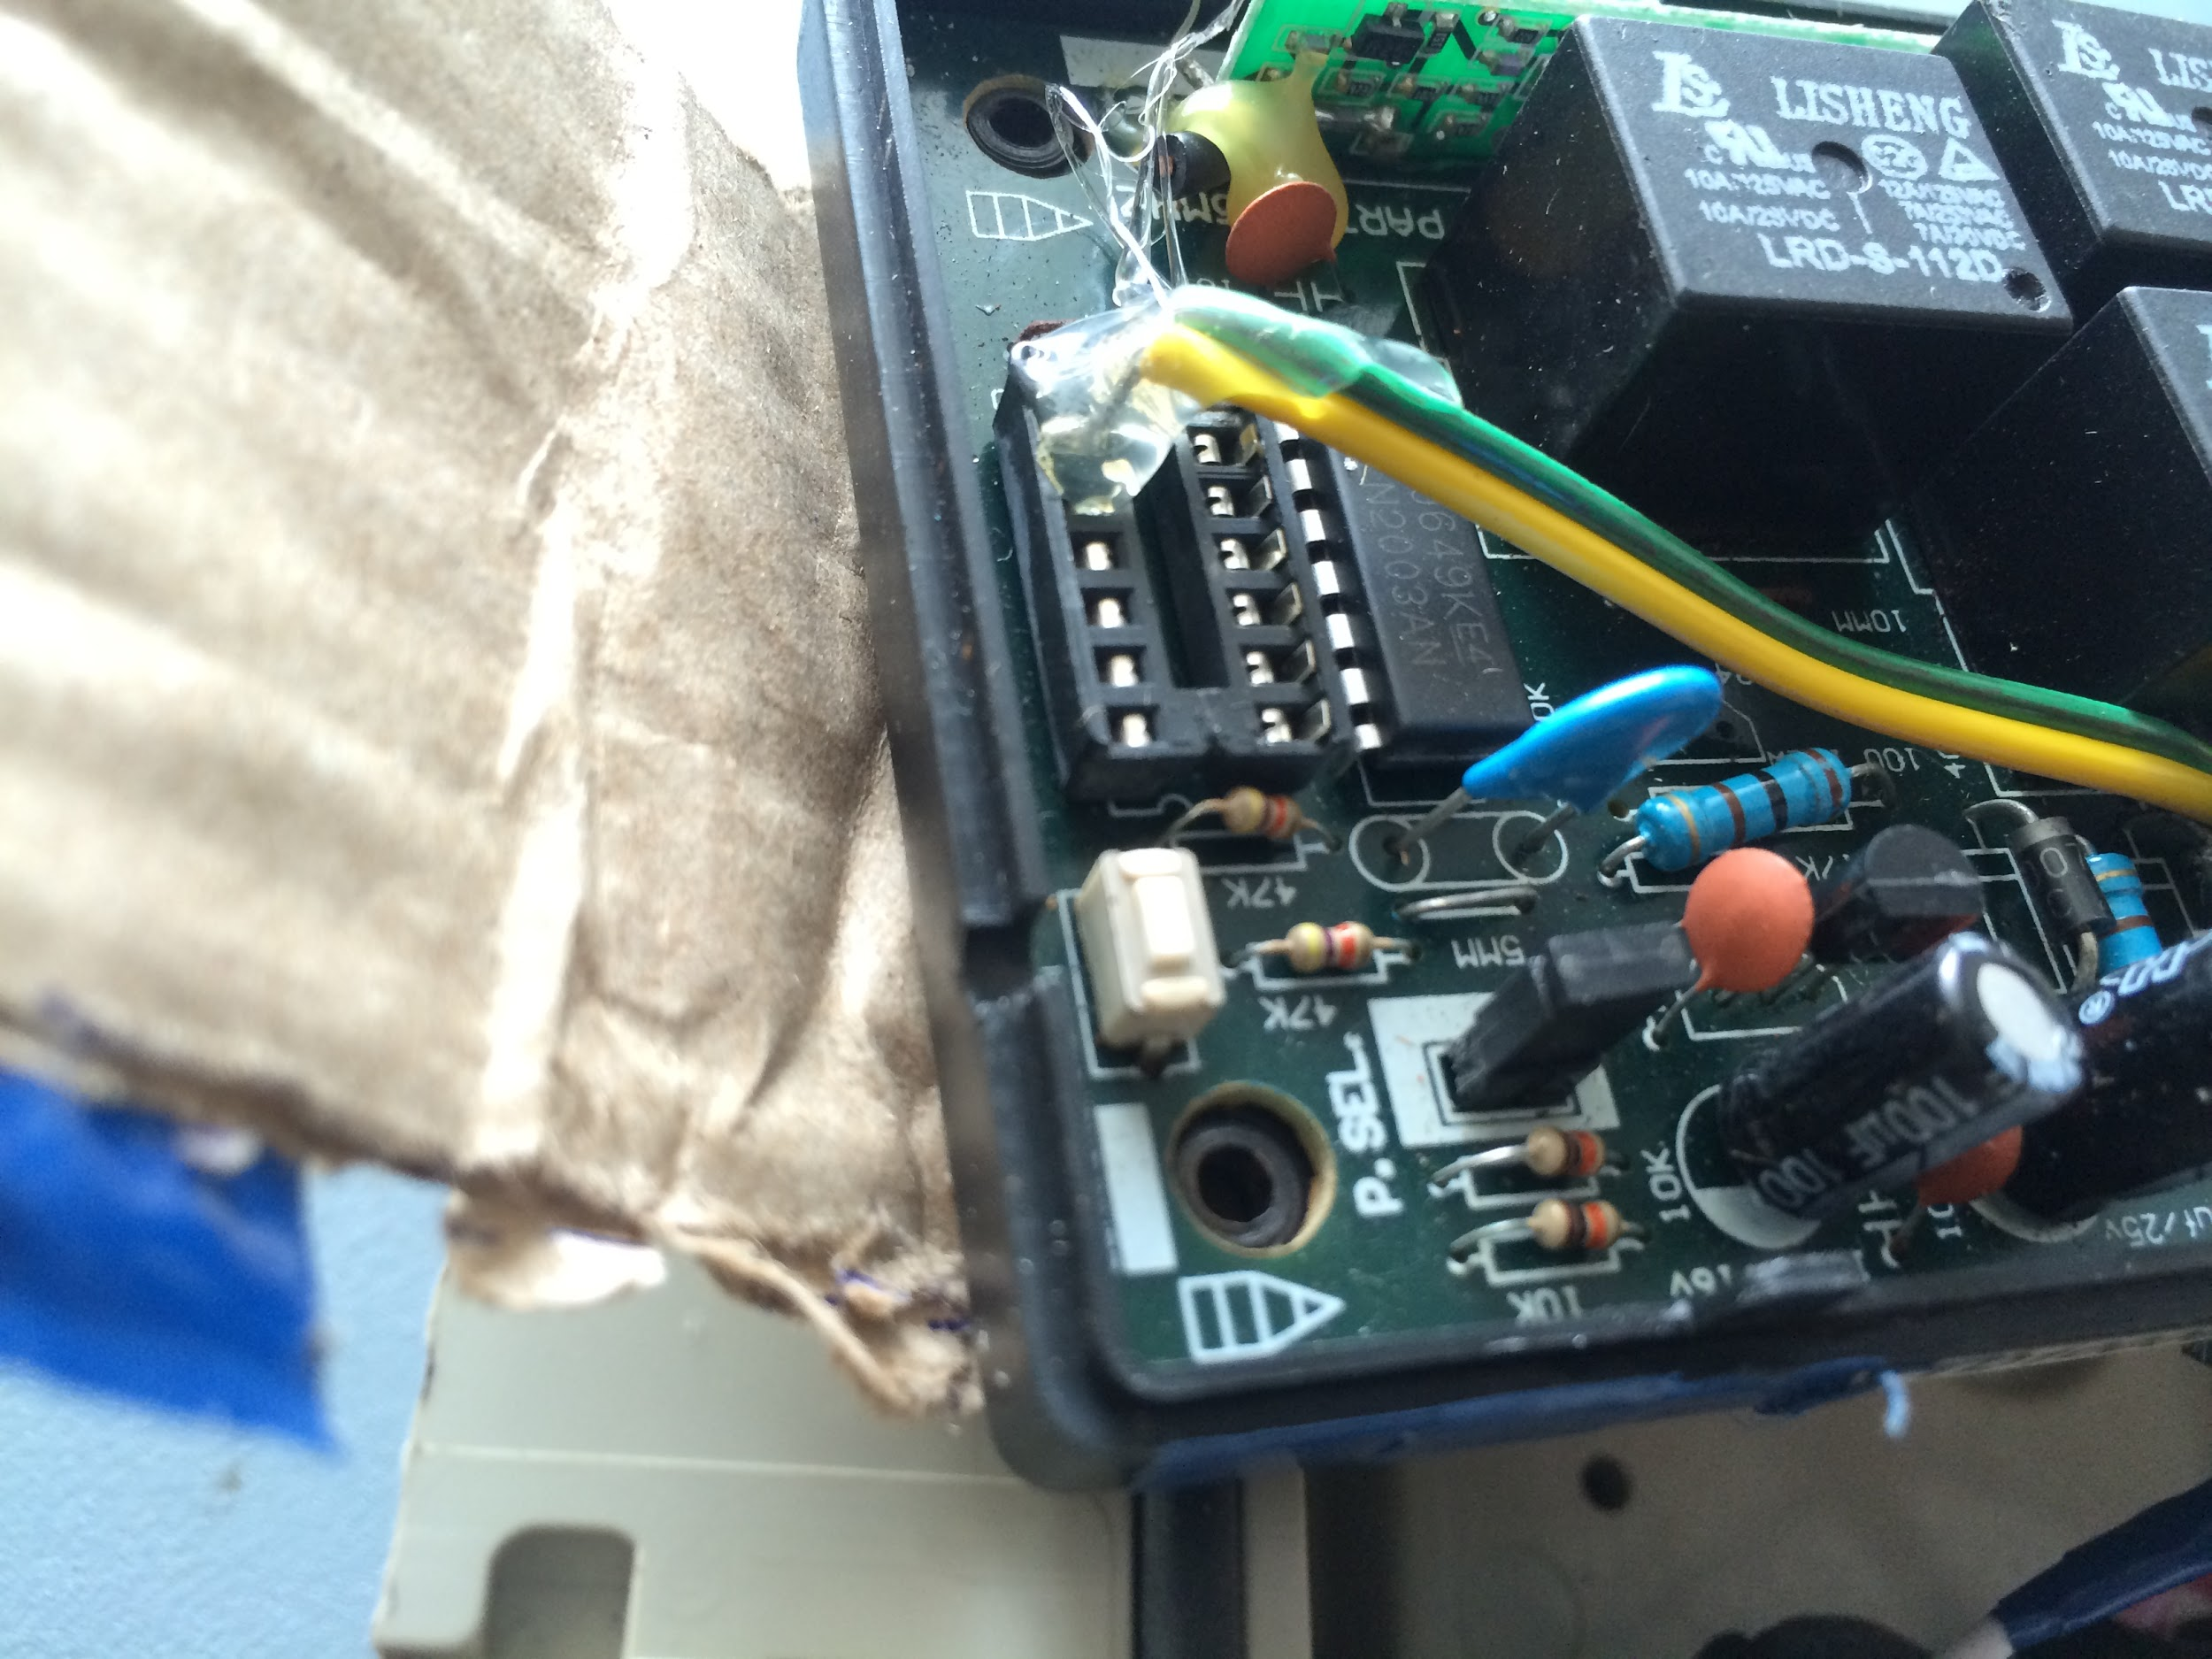 Jishnu Menon Portfolio Download Image Darlington Pair Amplifier Circuit Pc Android Iphone The Pic Controlled Relay With Ic S As Current Driver I Removed From Mount And Soldered A Piece Of Wire Each